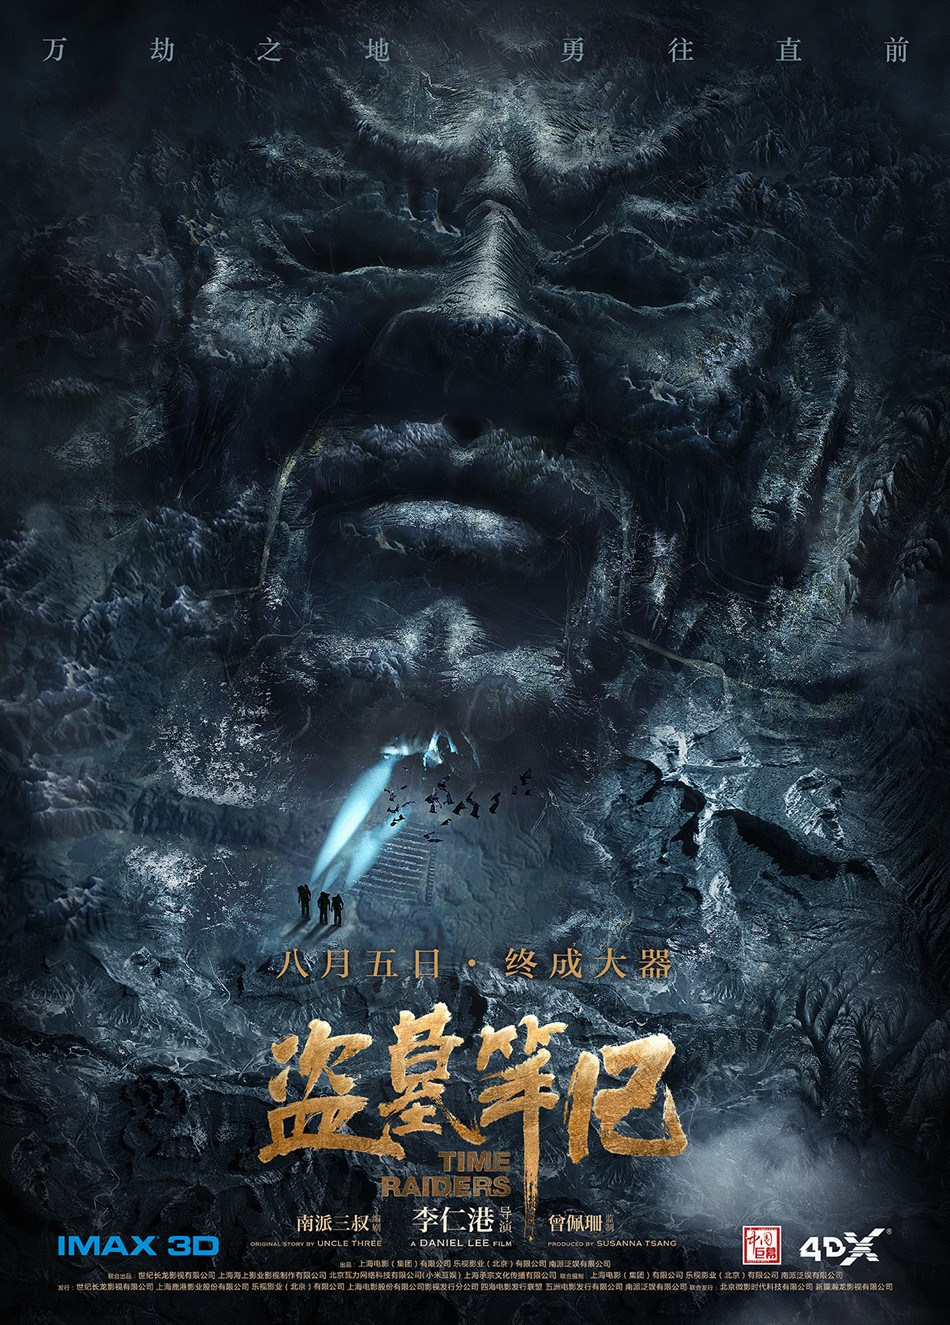 The Tomb Raider 2016 Chinese movie